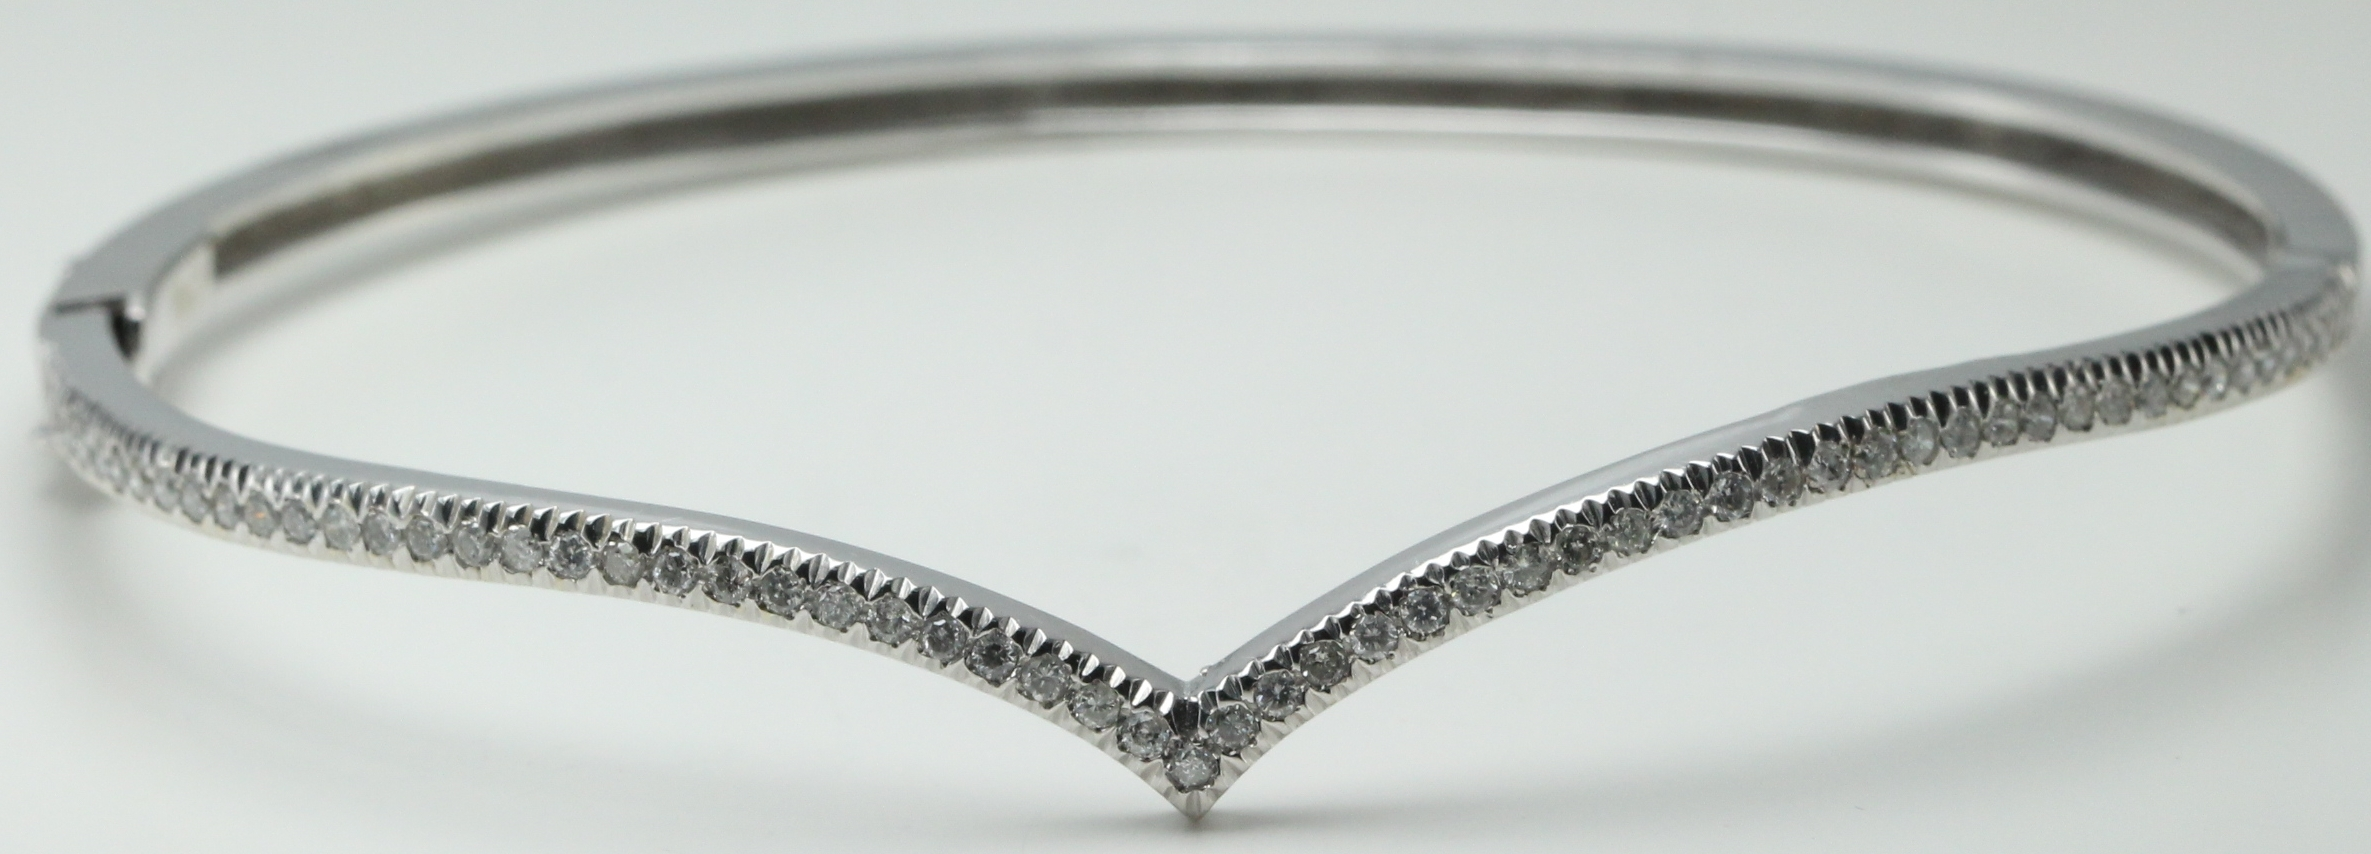 gold bangles white bracelet diamond day stunning bangle with night the this out round into solid pave bracelets